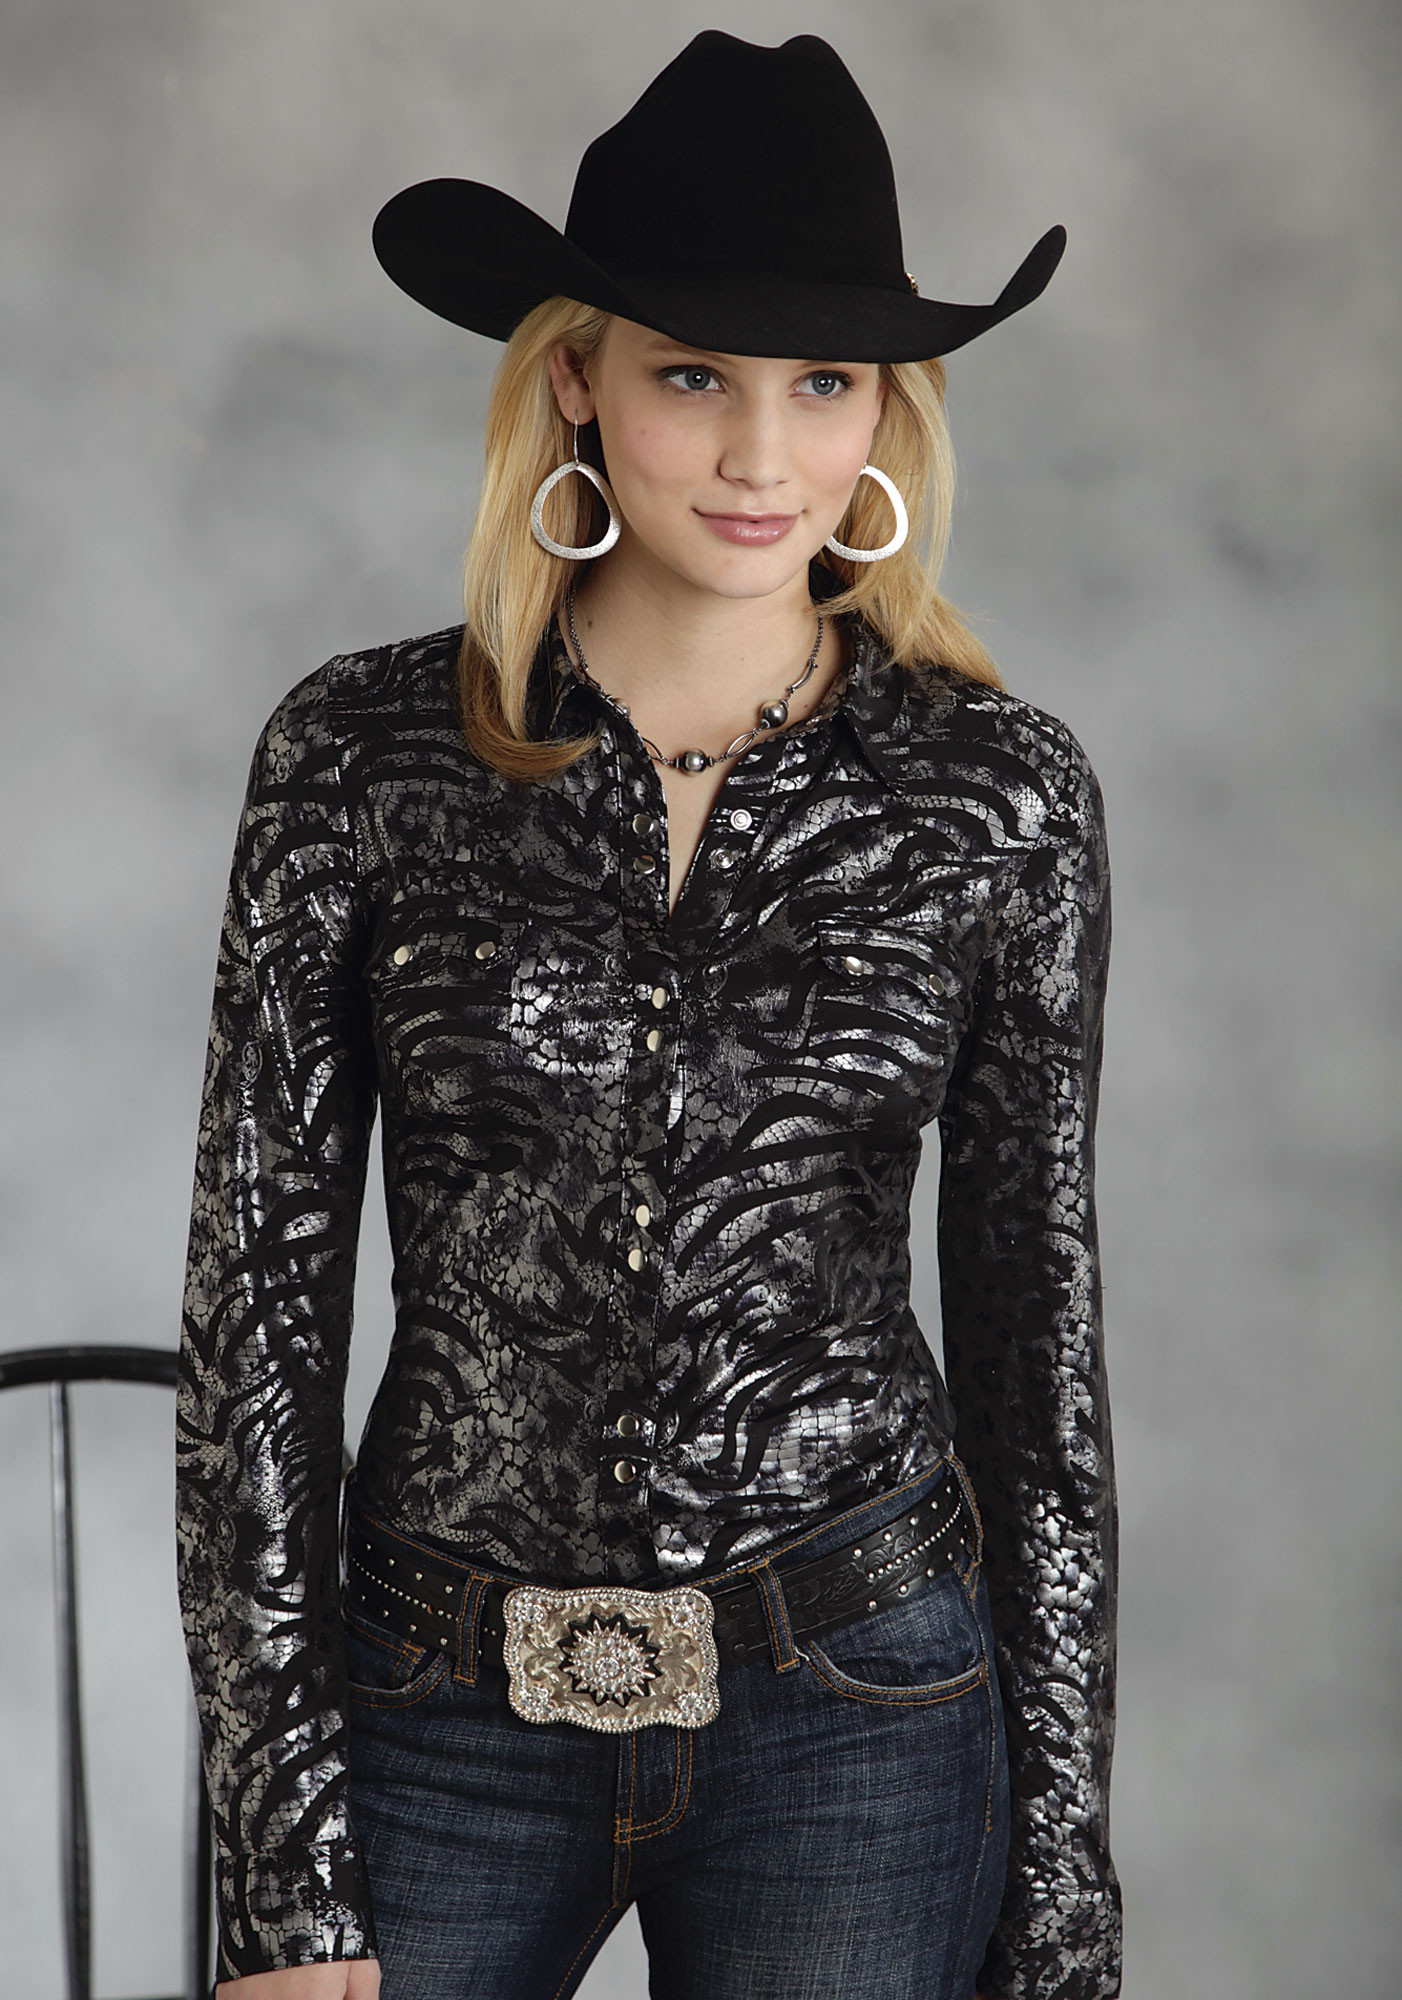 Western clothing for women